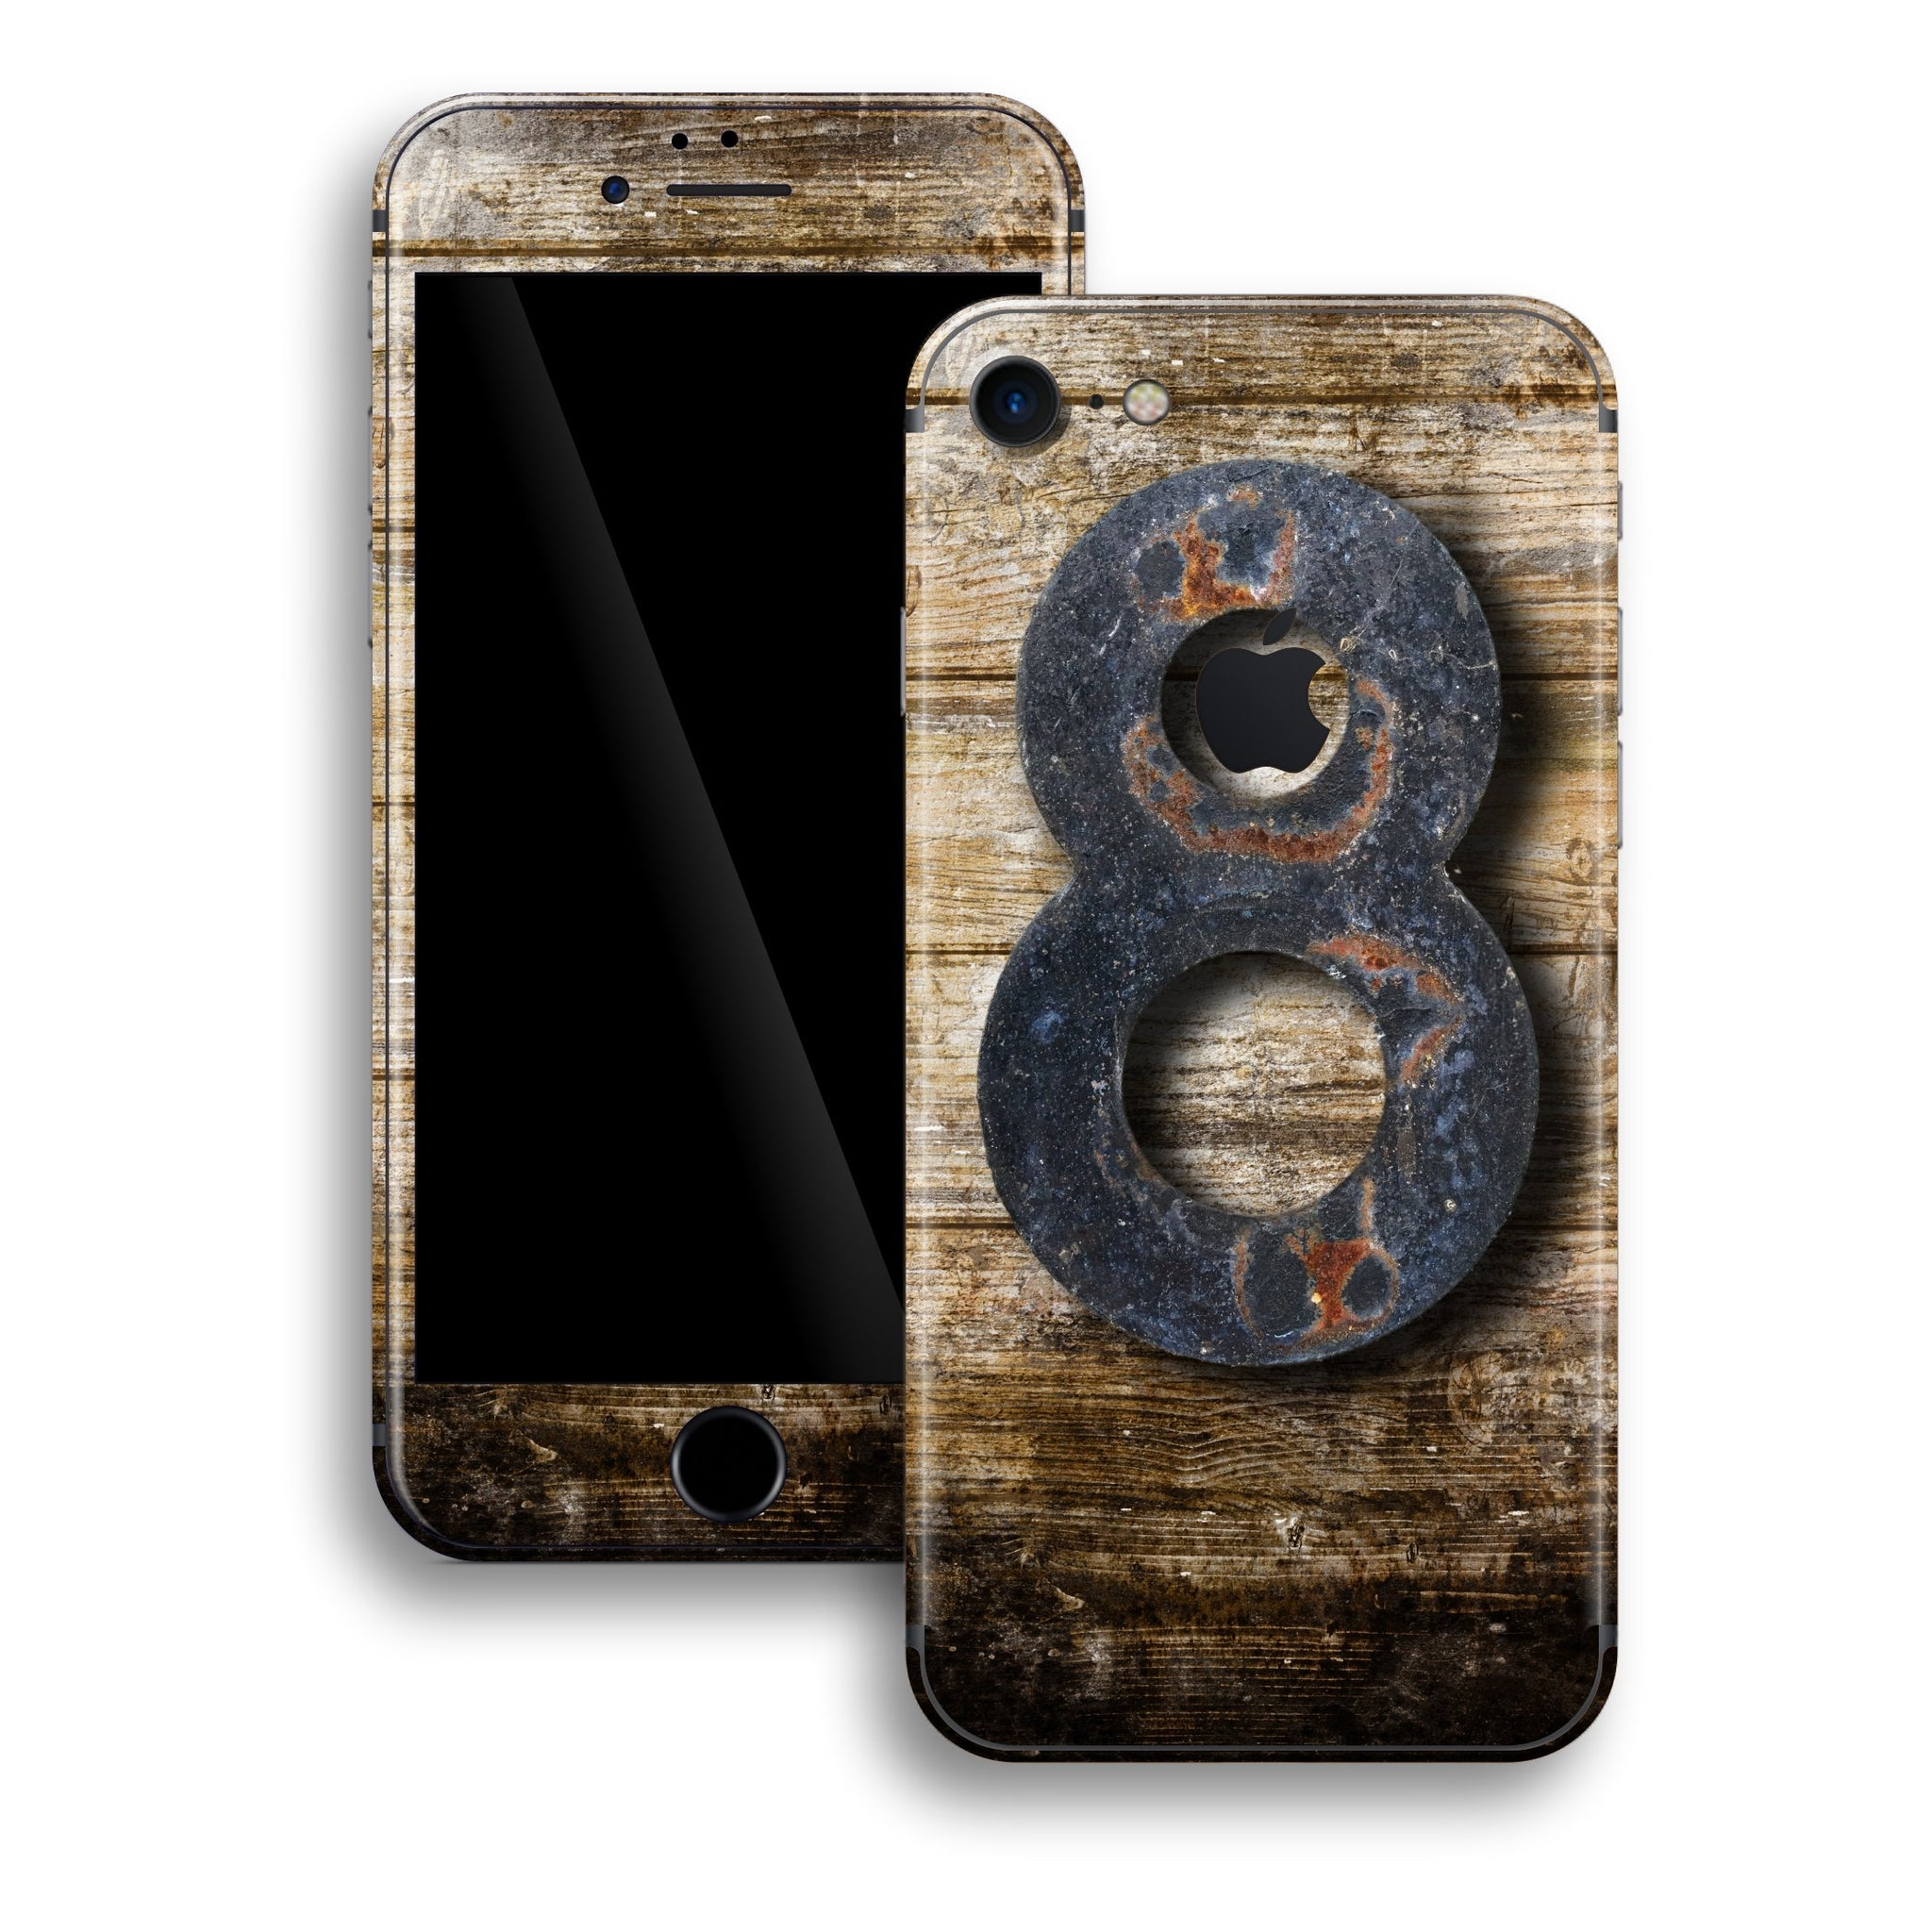 iPhone 8 Print Custom Signature Edition8 Wooden Sign Skin Wrap Decal by EasySkinz - Design 3